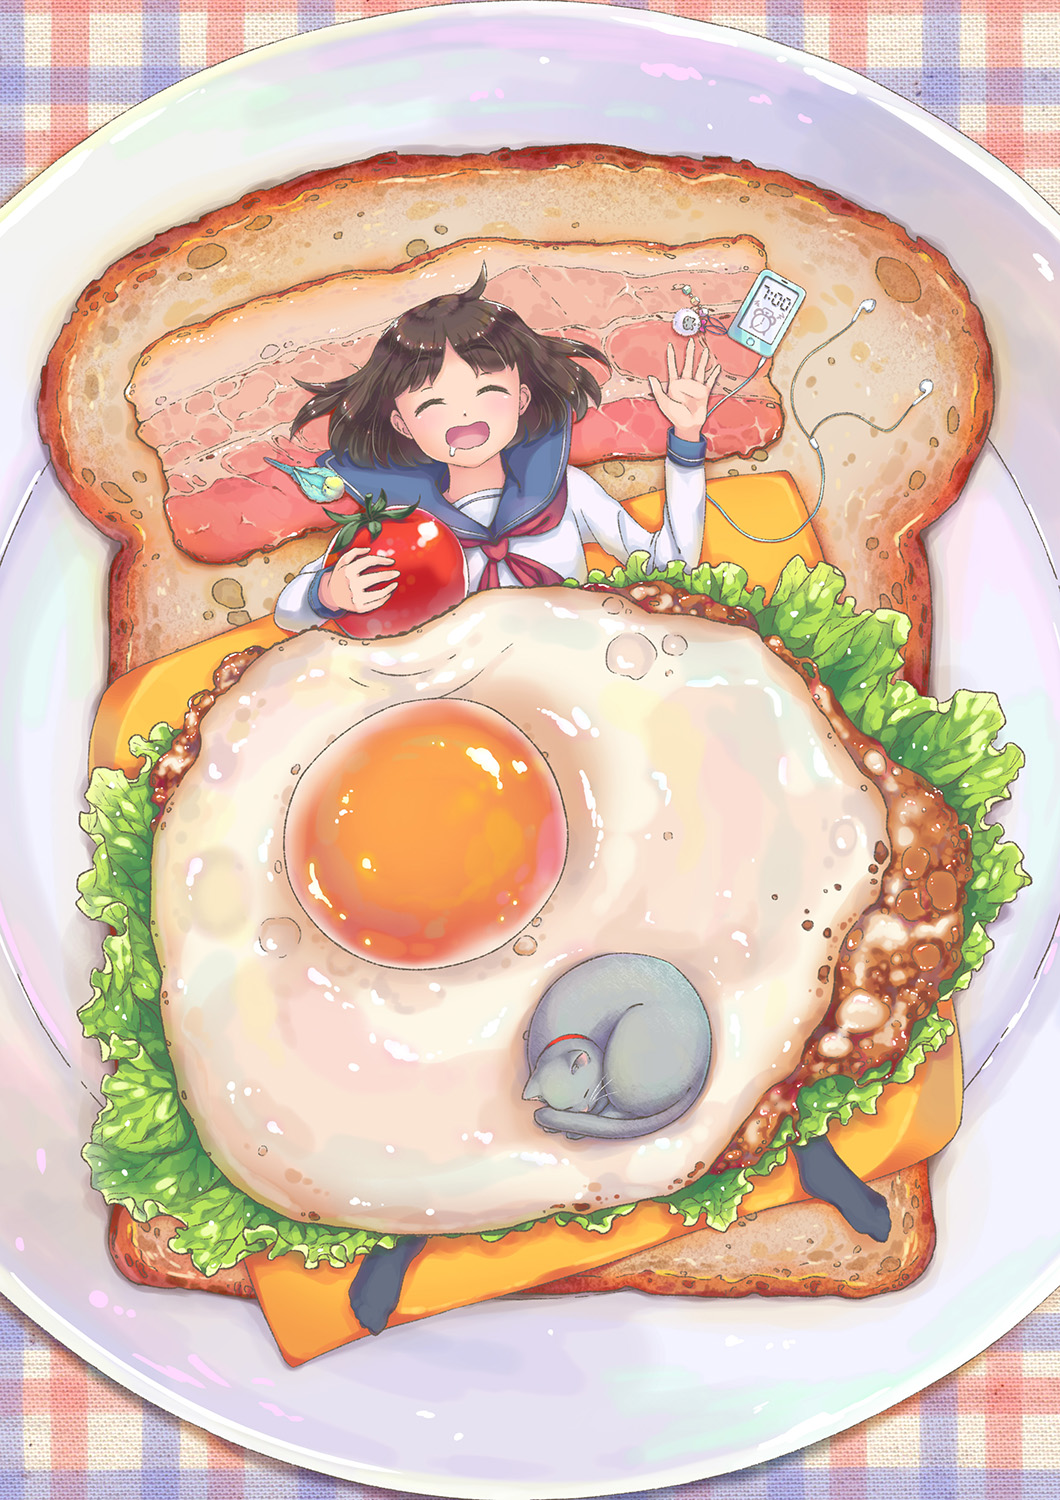 1girl bacon bangs bird black_legwear bread brown_hair cat cheese collar drooling earbuds egg eyes_closed food fried_egg girl_on_a_plate in_food iphone keychain lettuce lying meat minigirl on_back open_mouth original parted_bangs plate school_uniform serafuku short_hair sleeping socks toast tomato vegetable